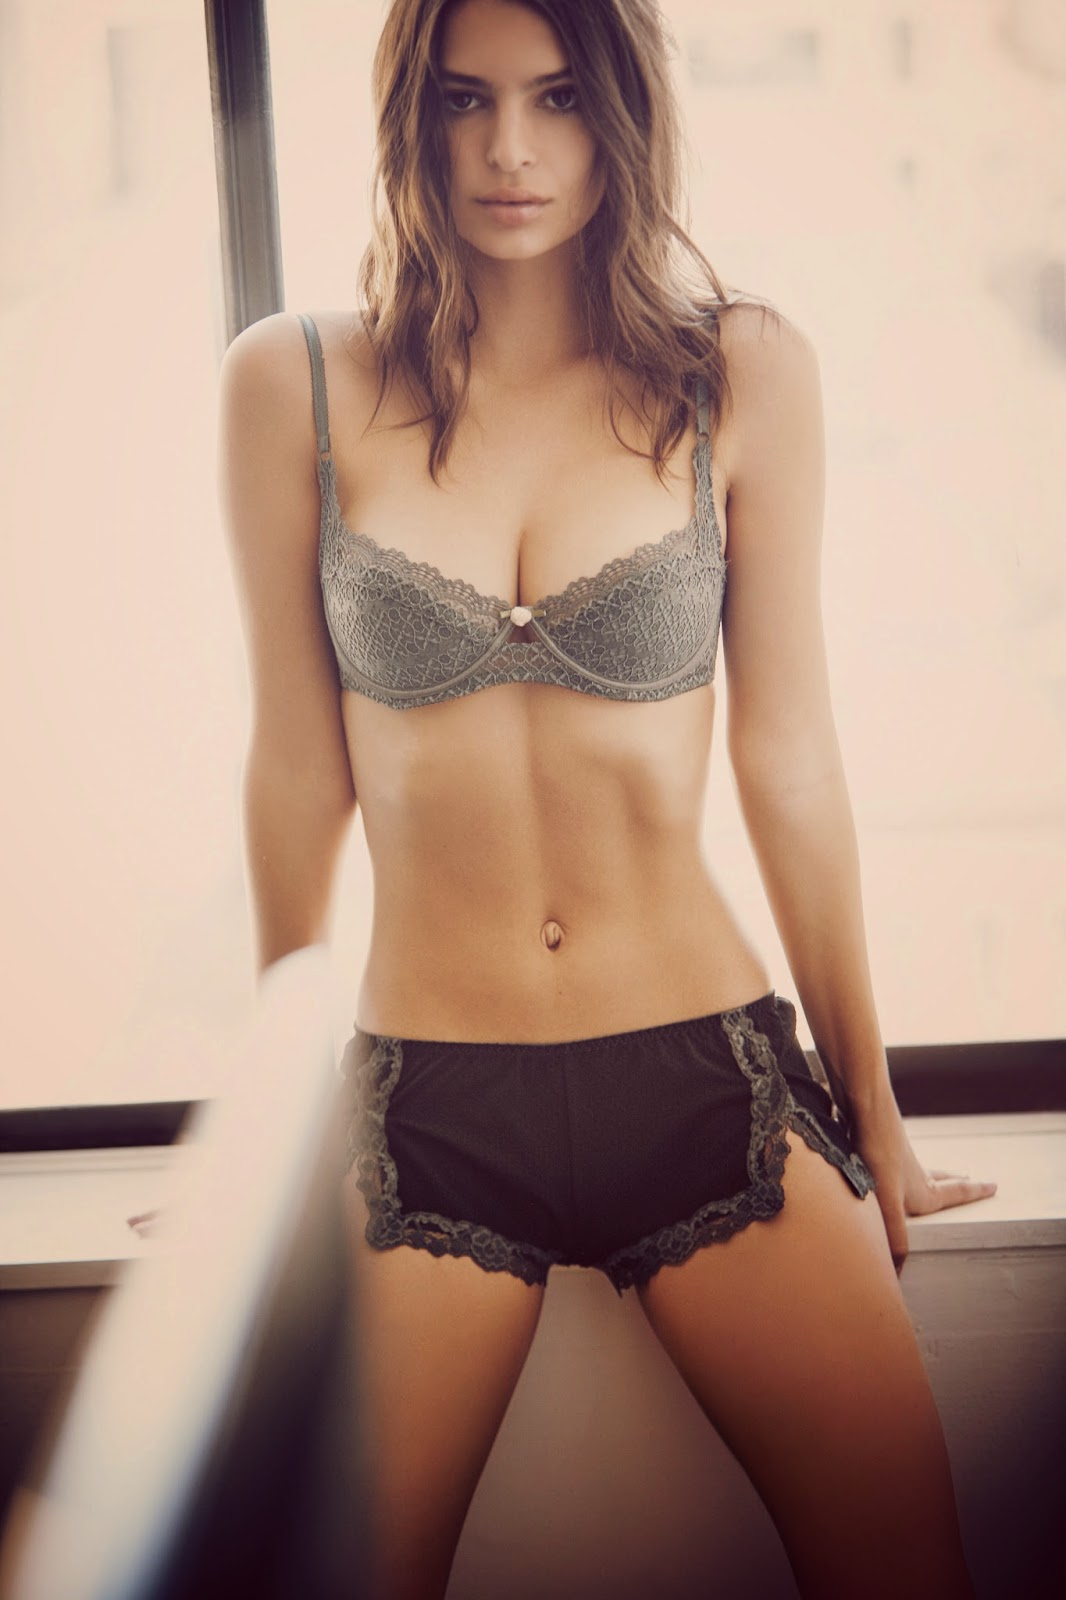 Emily Ratajkowski's Hotness Is Top Notch